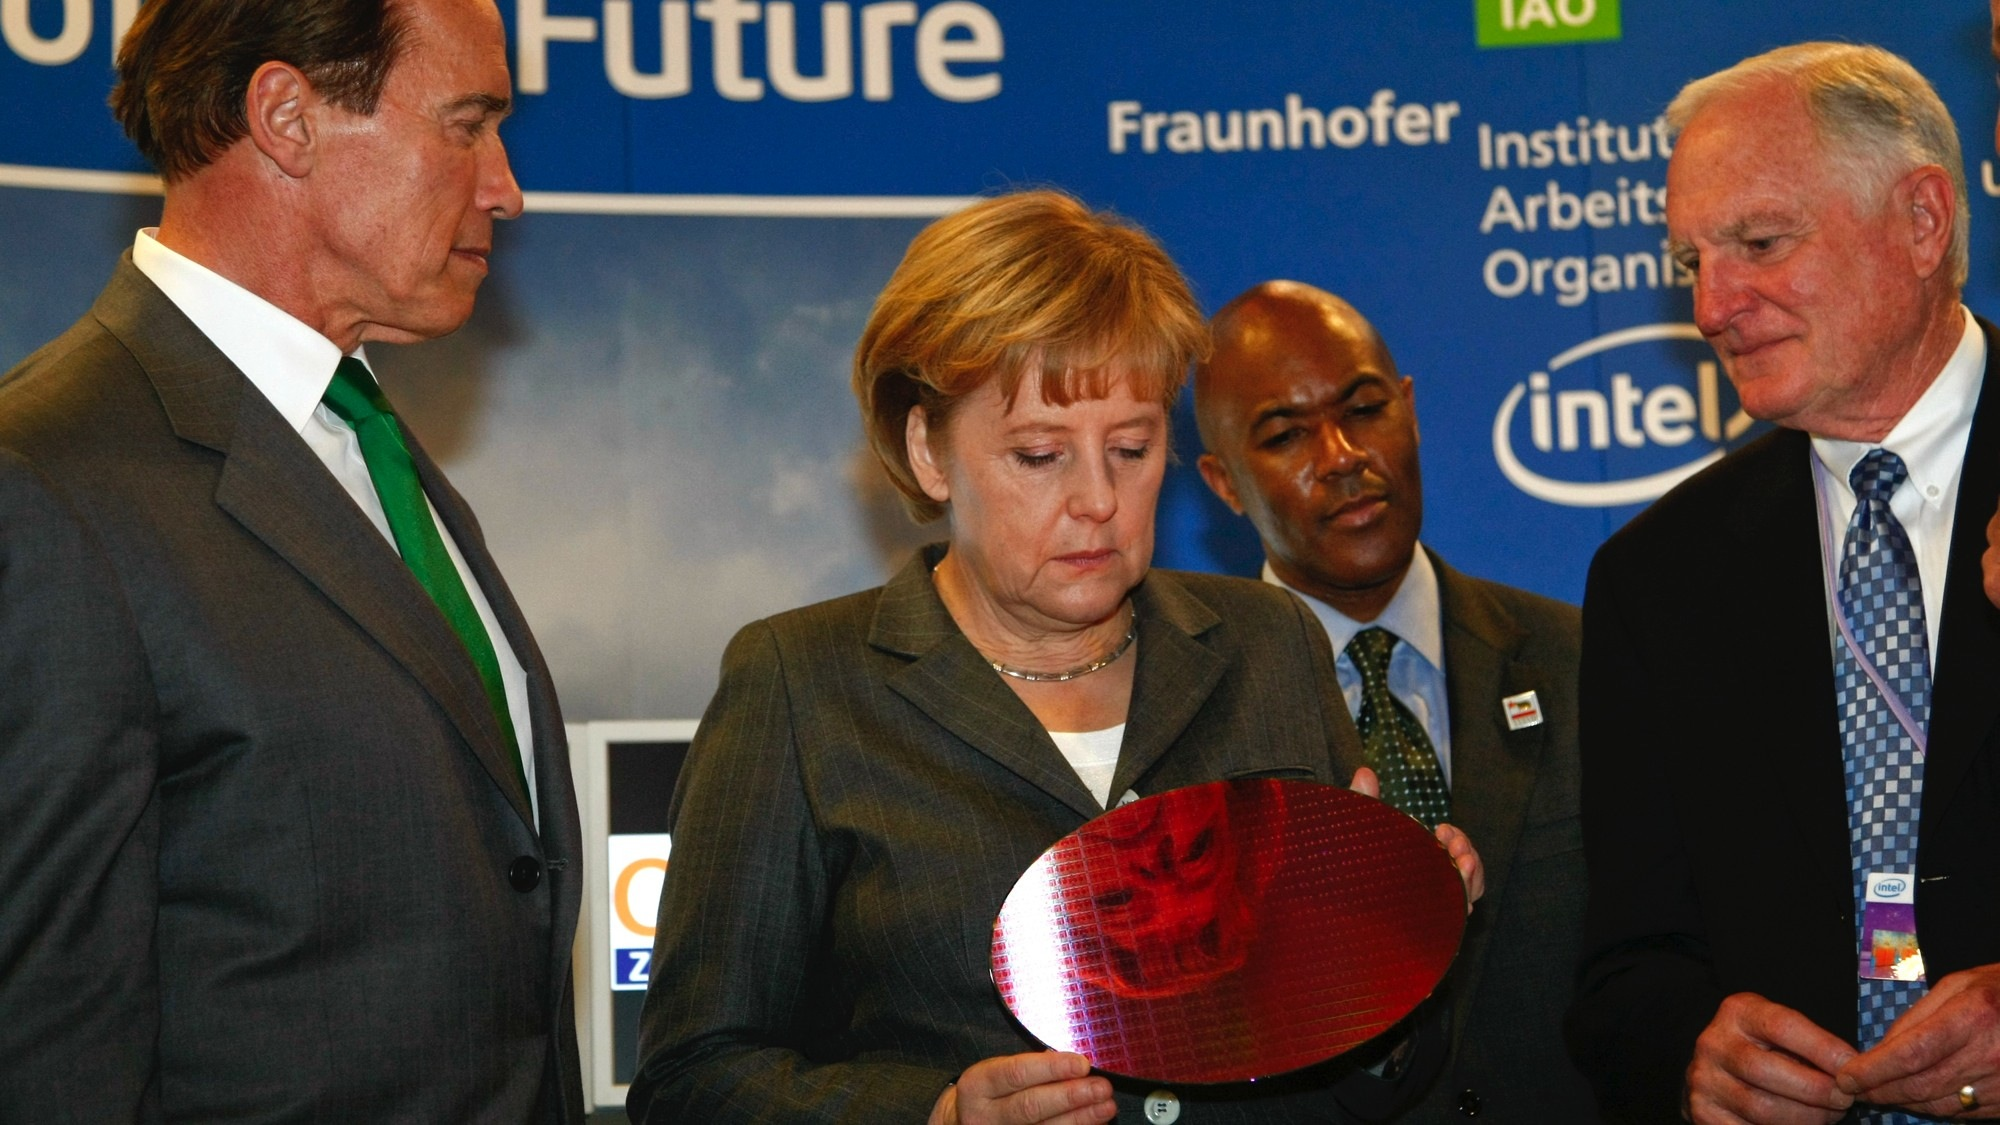 California Governor Arnold Schwarzenegger (L) and Craig R. Barrett, CEO of Intel (R) look to German Chancellor Angela Merkel (C) as she holds a chip wafer at the booth of Intel during the opening tour of the CeBIT computer fair in Hanover March 3, 2009. The world's biggest IT fair CeBIT with 4300 exhibitors from 69 countries opens its doors to the public on March 3, and runs through March 8, 2009.  REUTERS/Fabrizio Bensch (GERMANY) - RTXCAI1